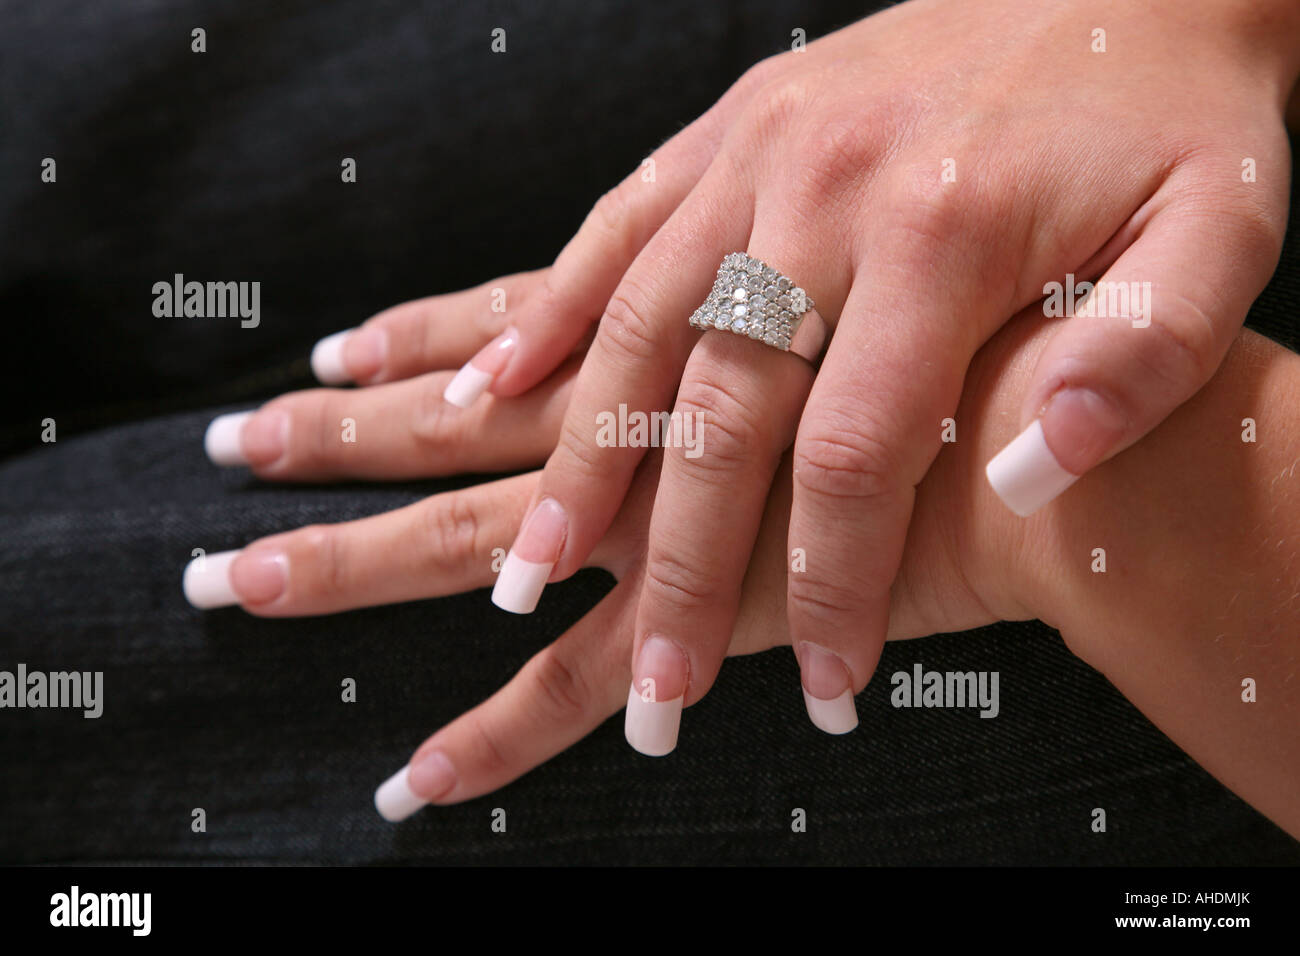 Manicured Nails Stock Photos & Manicured Nails Stock Images - Alamy